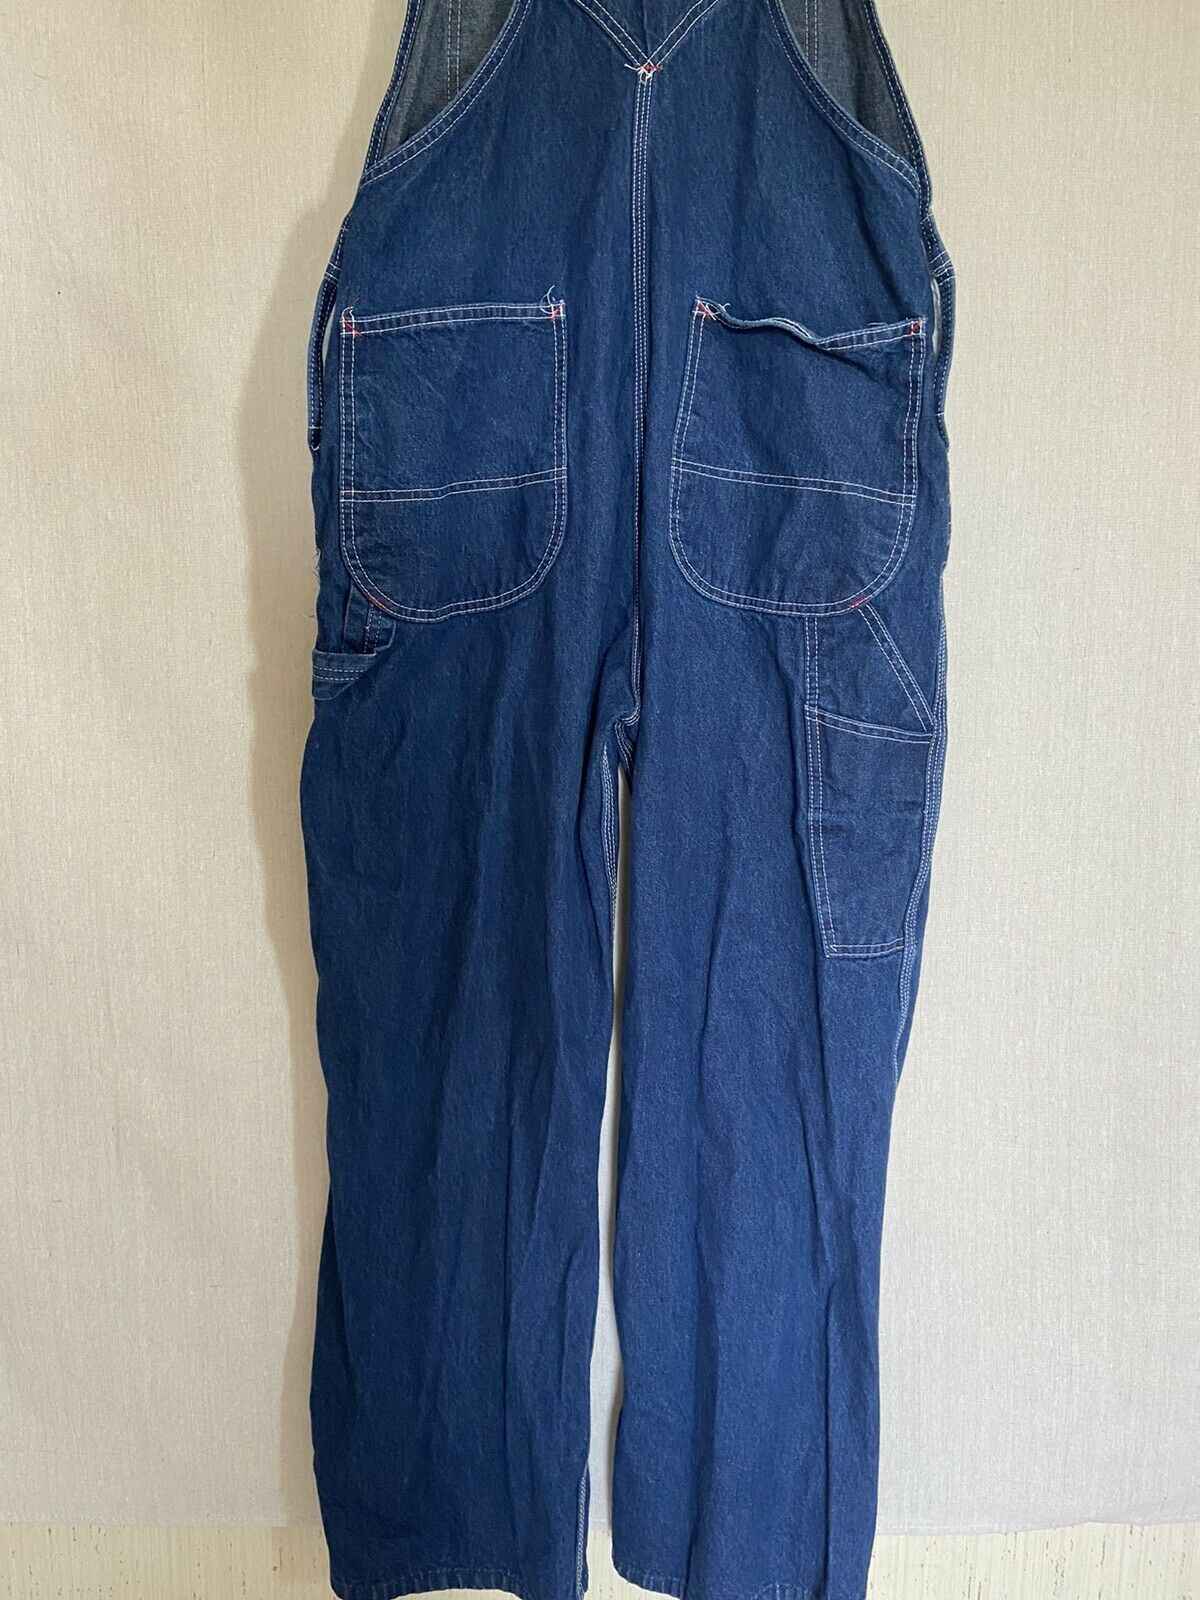 Dickies Denim Overalls Size 38x30 Fit 36x29 - image 7